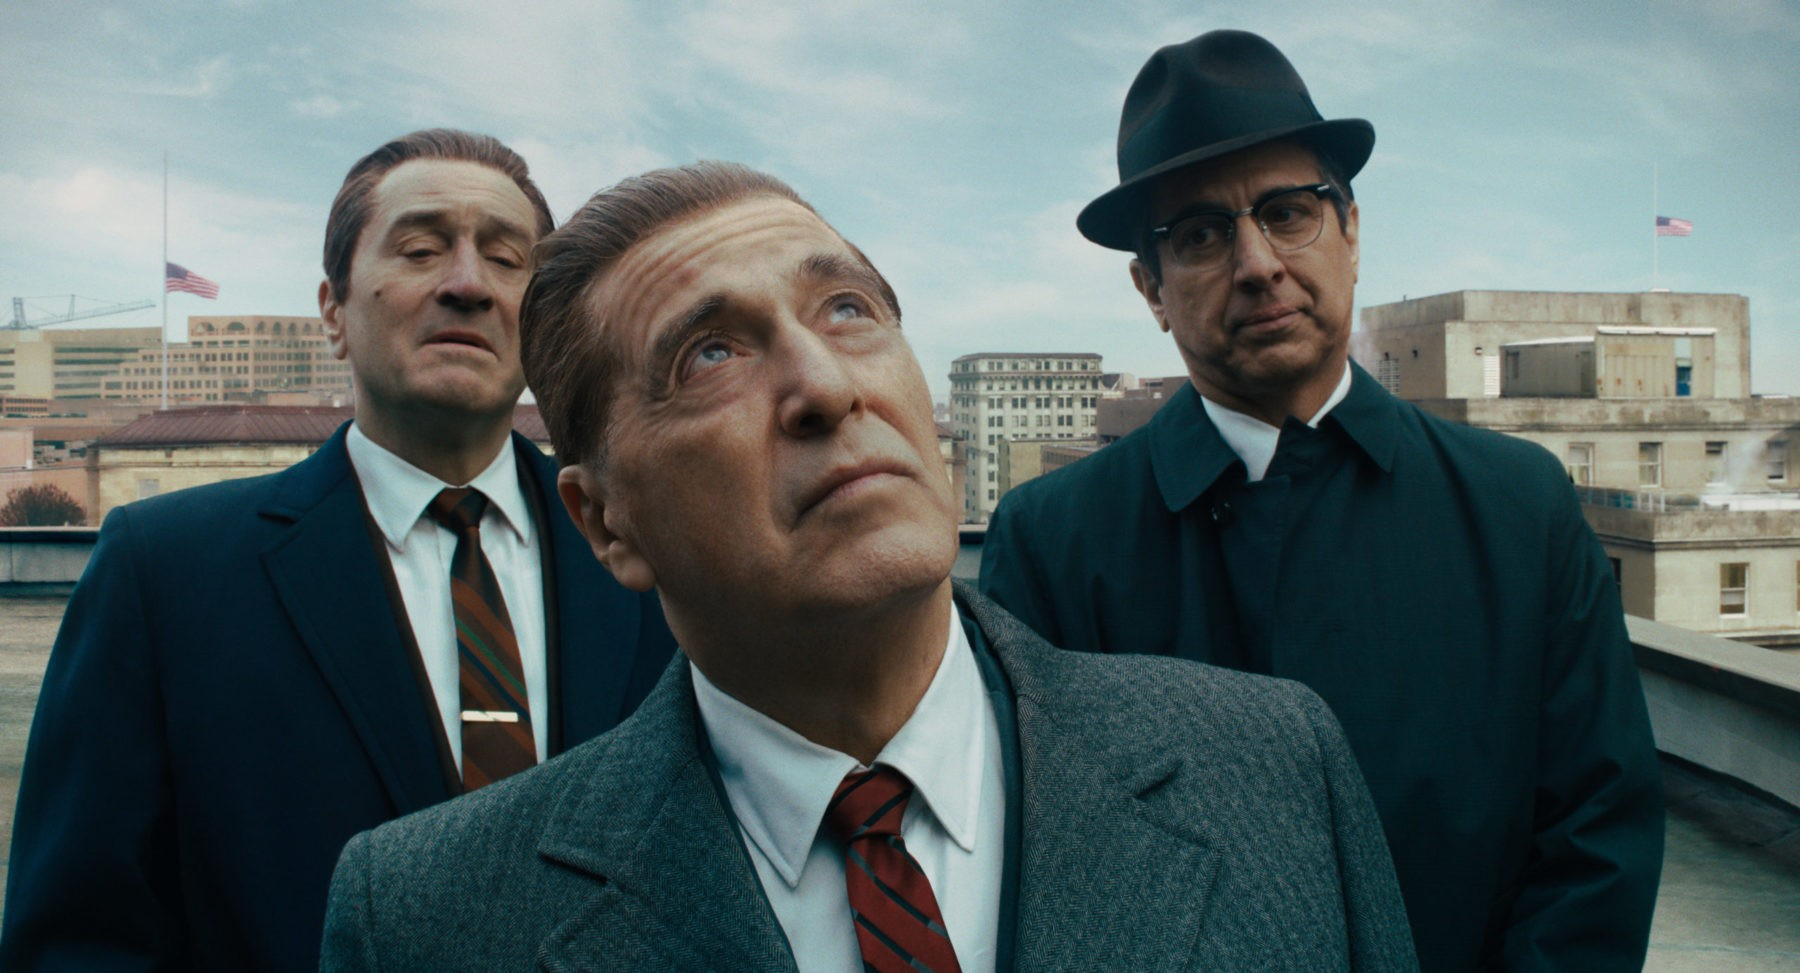 Martin Scorsese's The Irishman has arrived